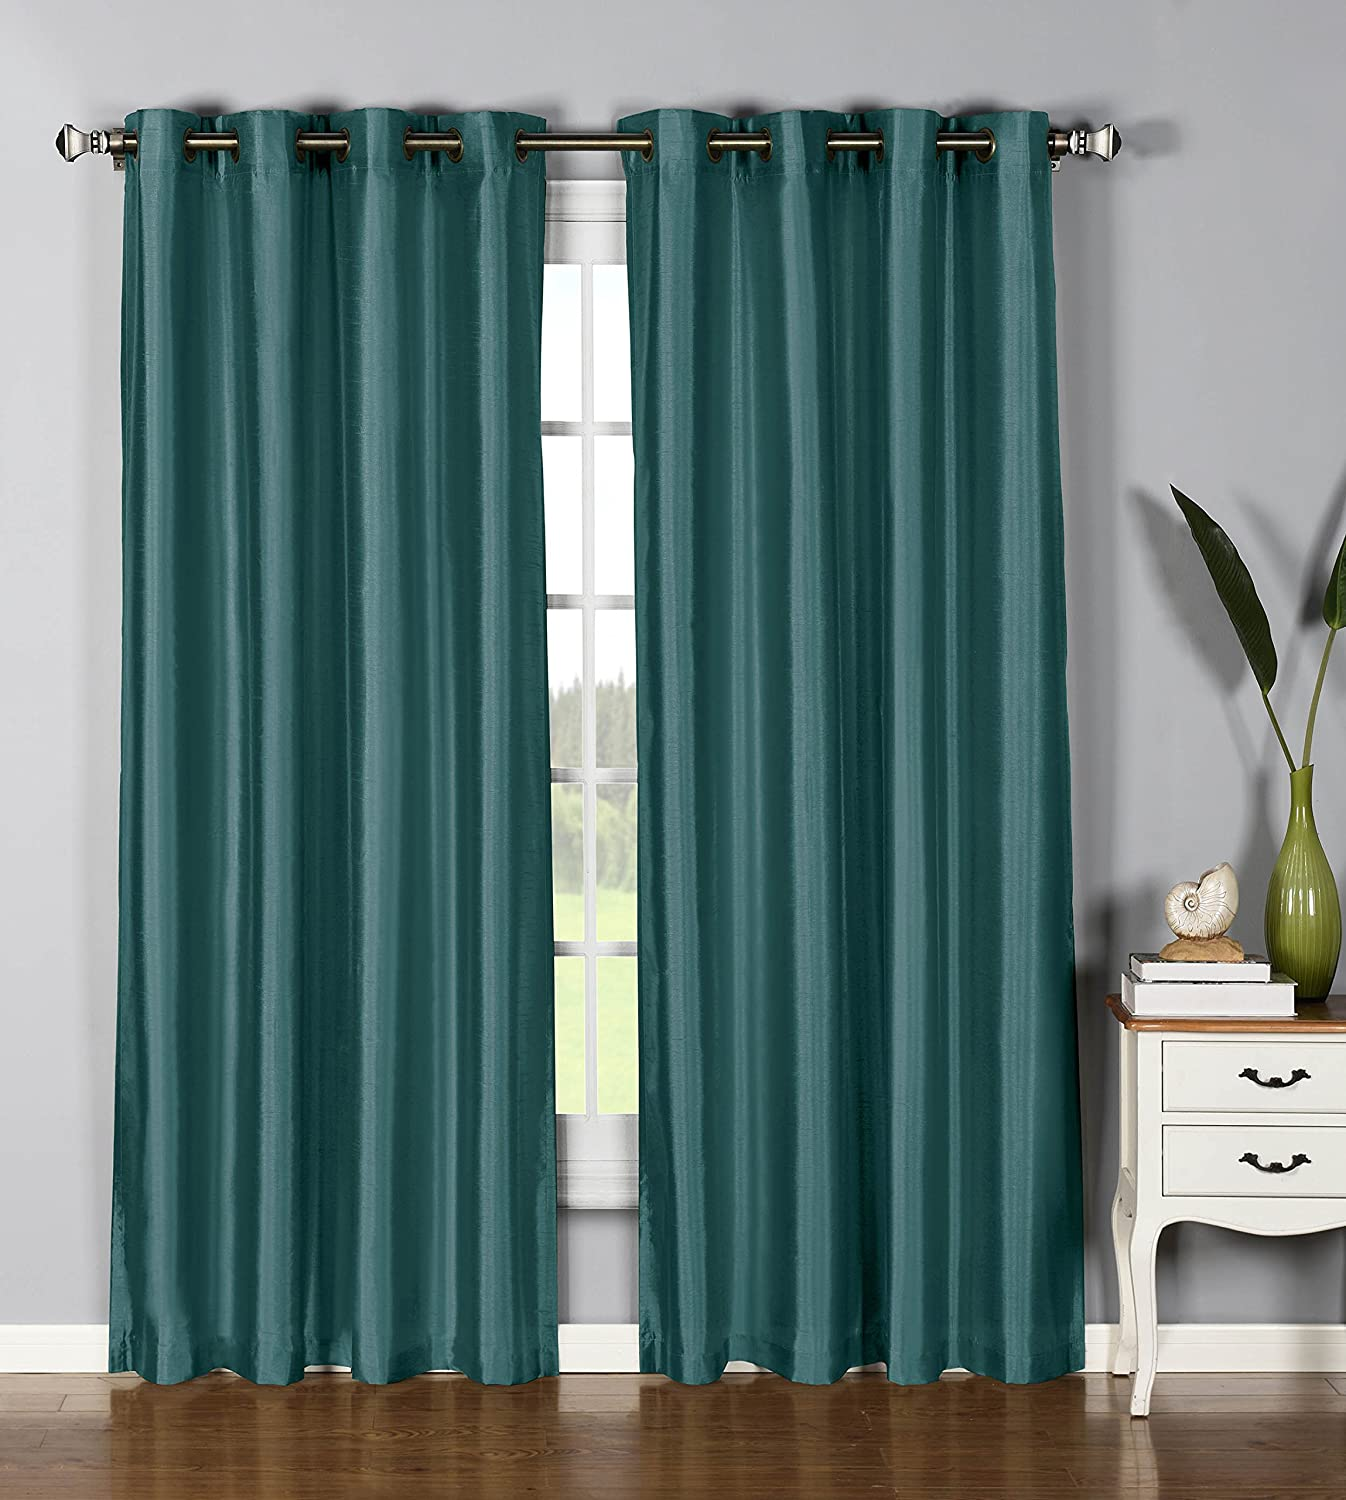 home interior panels navy semi cream sheer treatments ideas curtains coral pinch drapery sheers cute for decor colored window pleated curtain sh